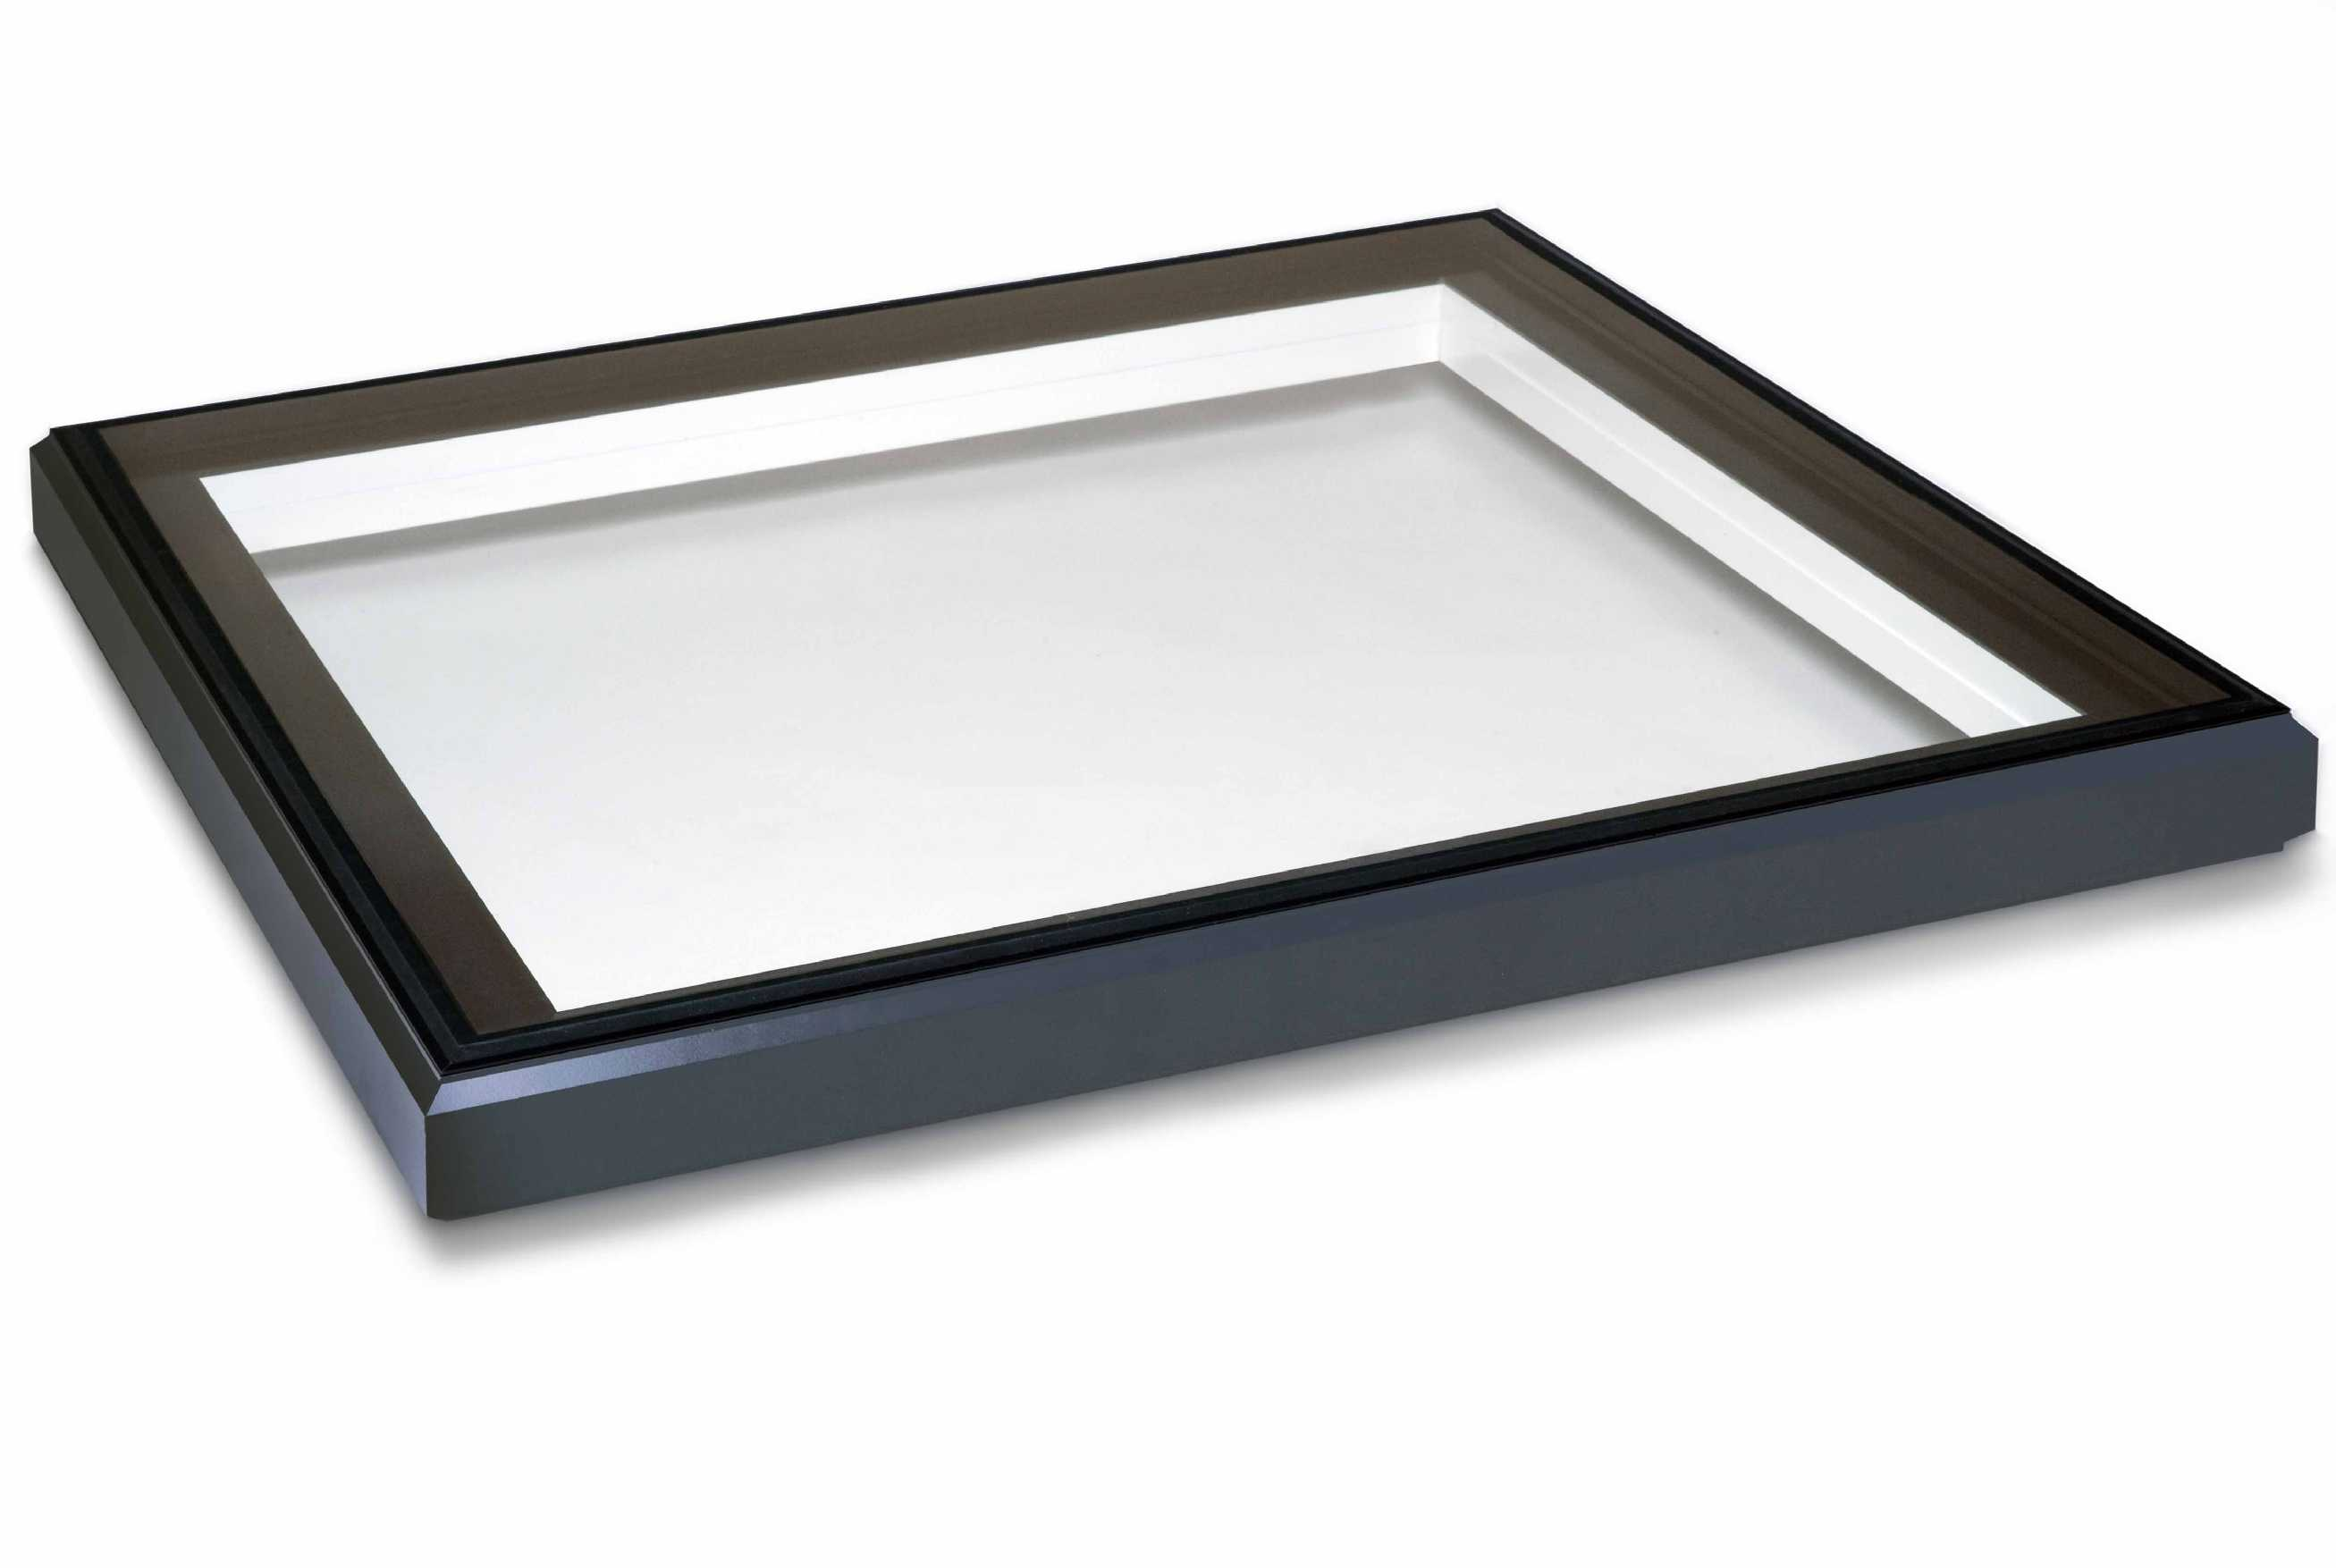 Buy EcoGard Flat Roof light, Double Glazed, Fixed, 1,000mm x 1,500mm online today